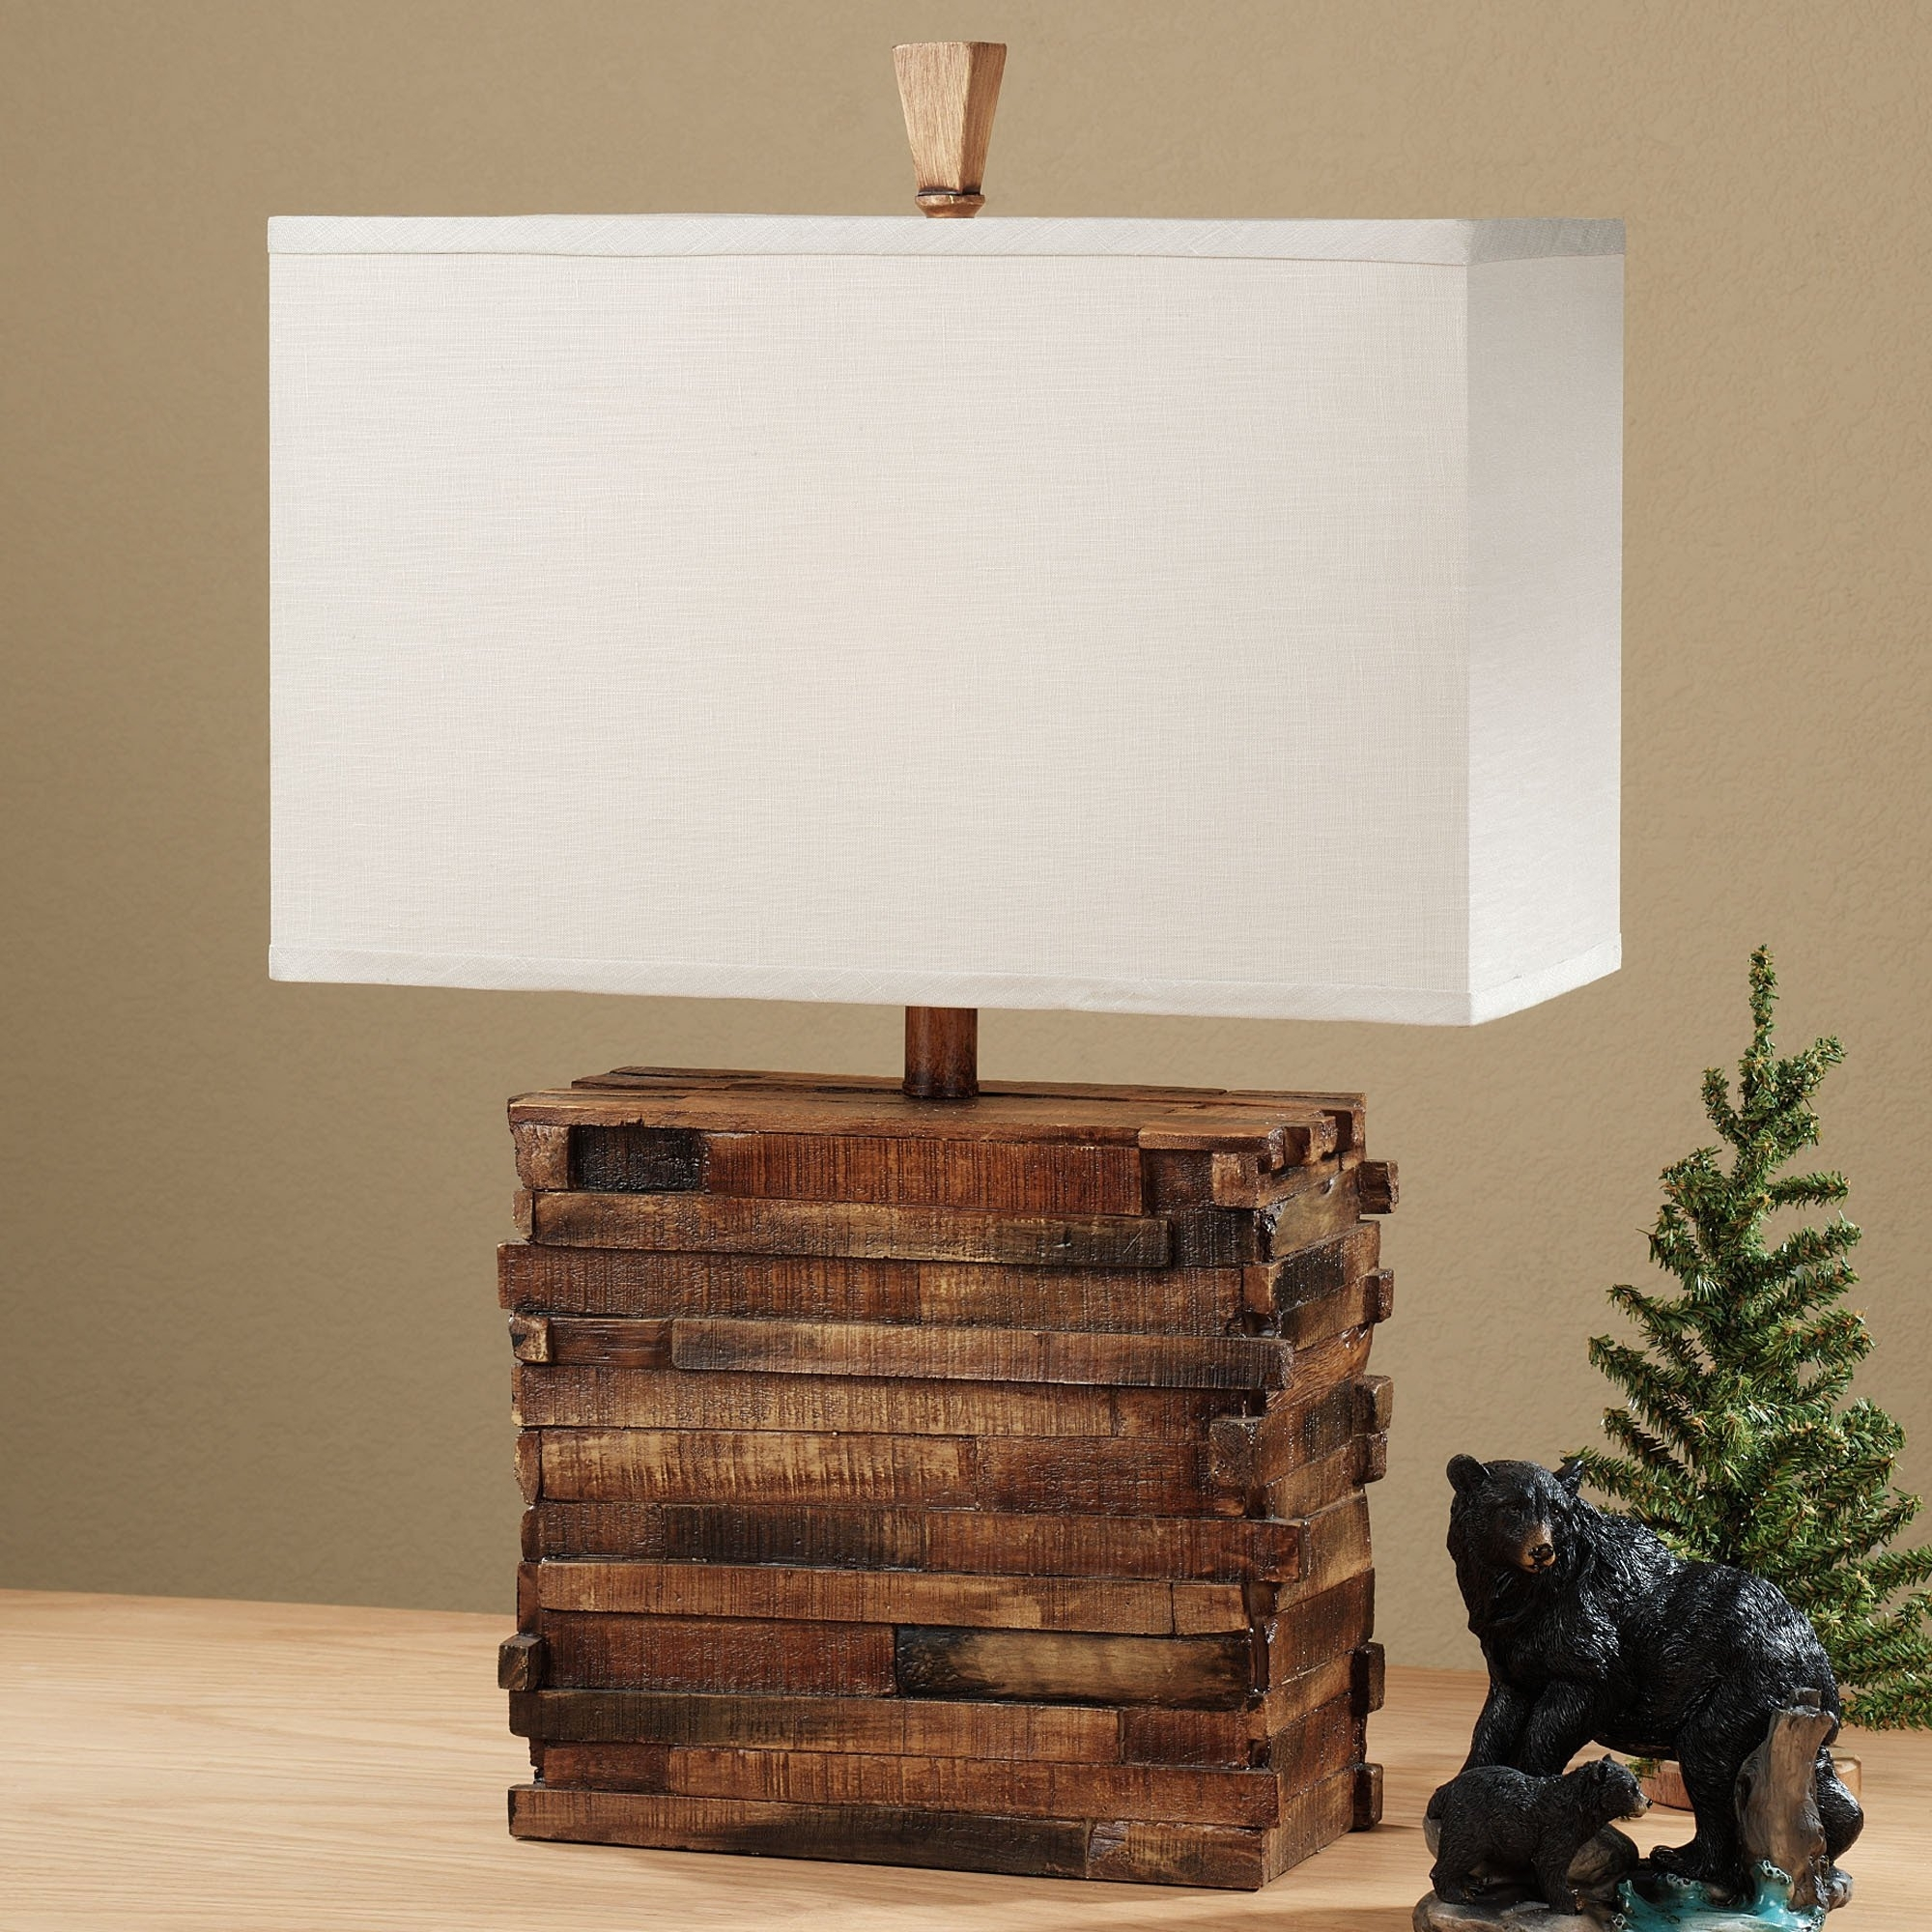 Rustic Living Room Table Lamps Intended For Most Current Rustic Living Room Table Lamps Modern House, Rustic Table Lamps (Gallery 2 of 20)